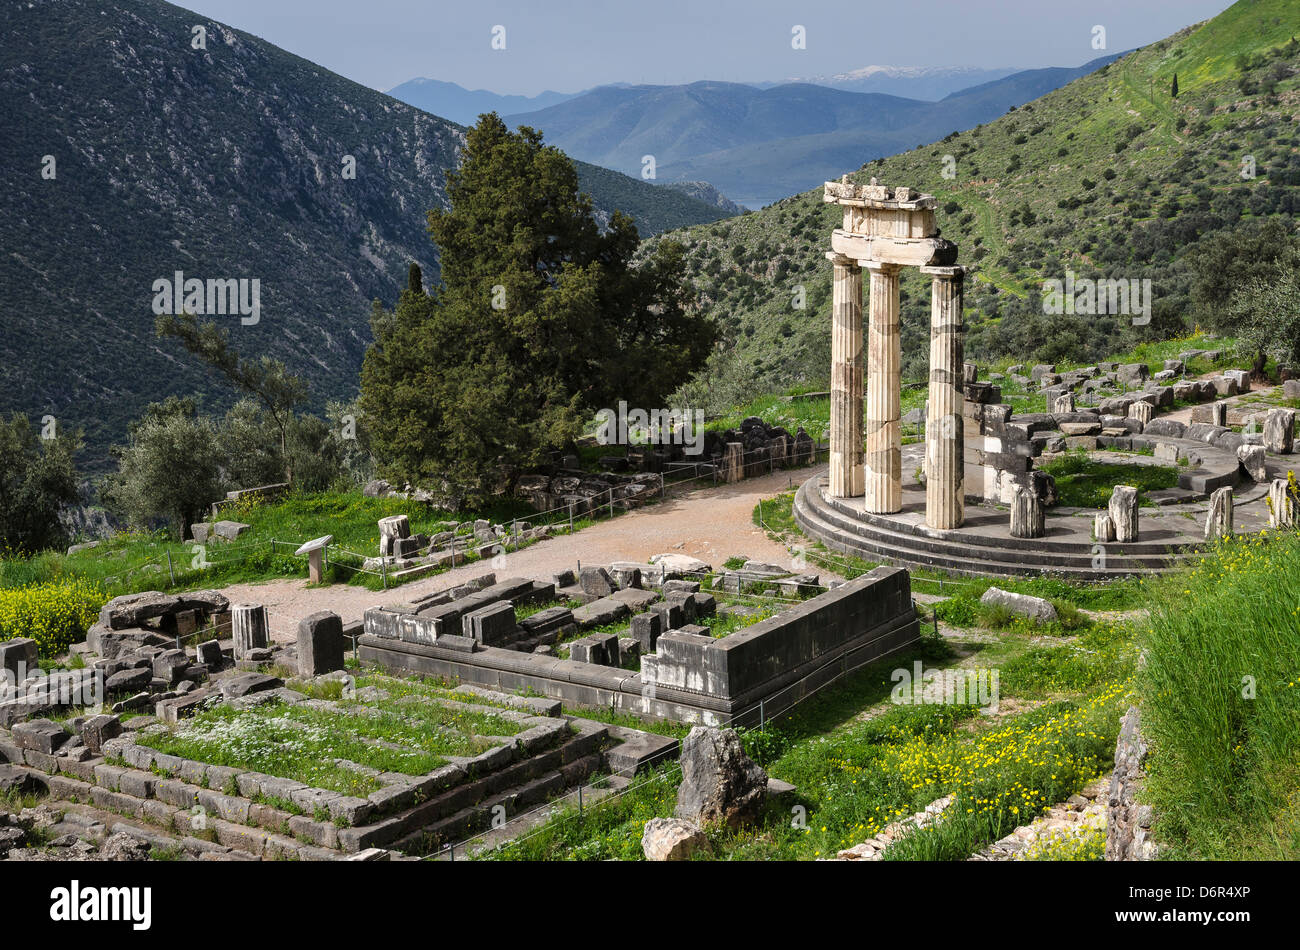 The circular Tholos at the Temple of Athena Pronaia, Ancient Delphi, Thessaly, Greece. Stock Photo